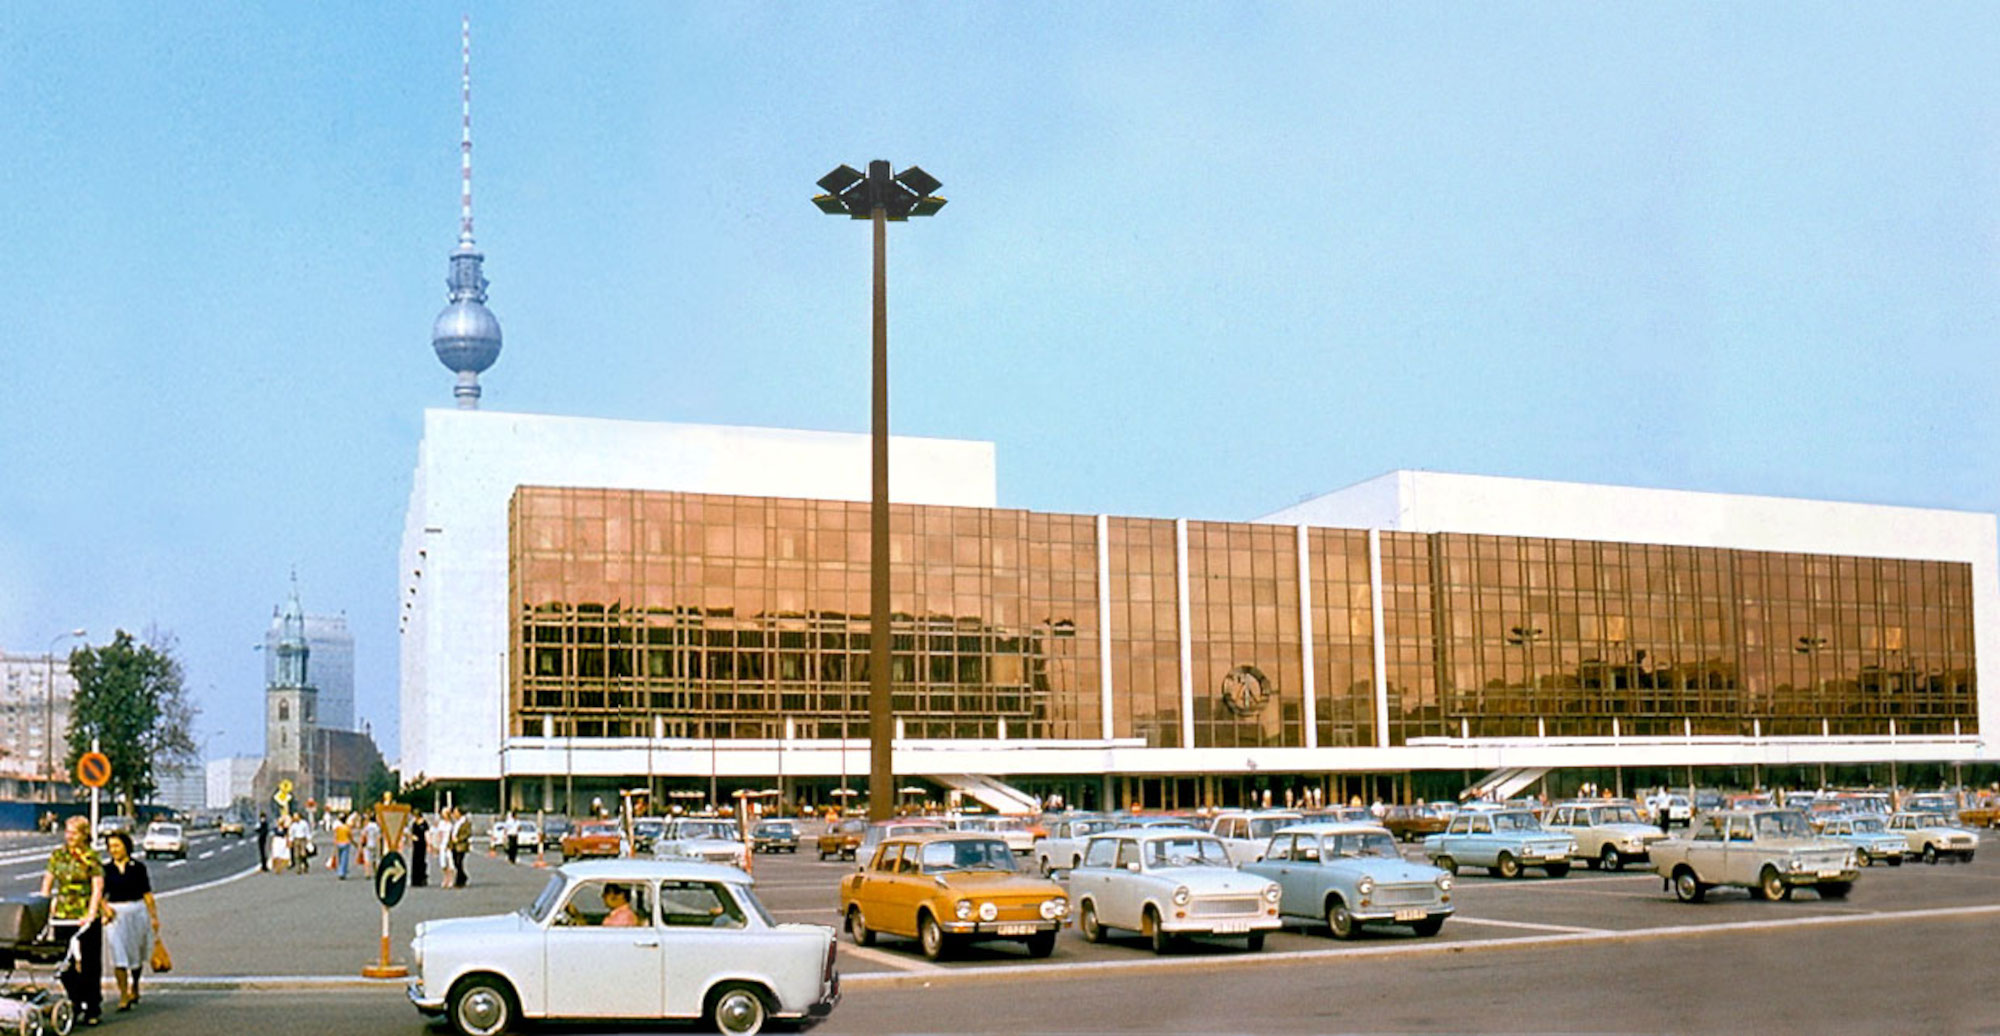 Palast der Republik, 1977. Courtesy: Wikimedia Commons